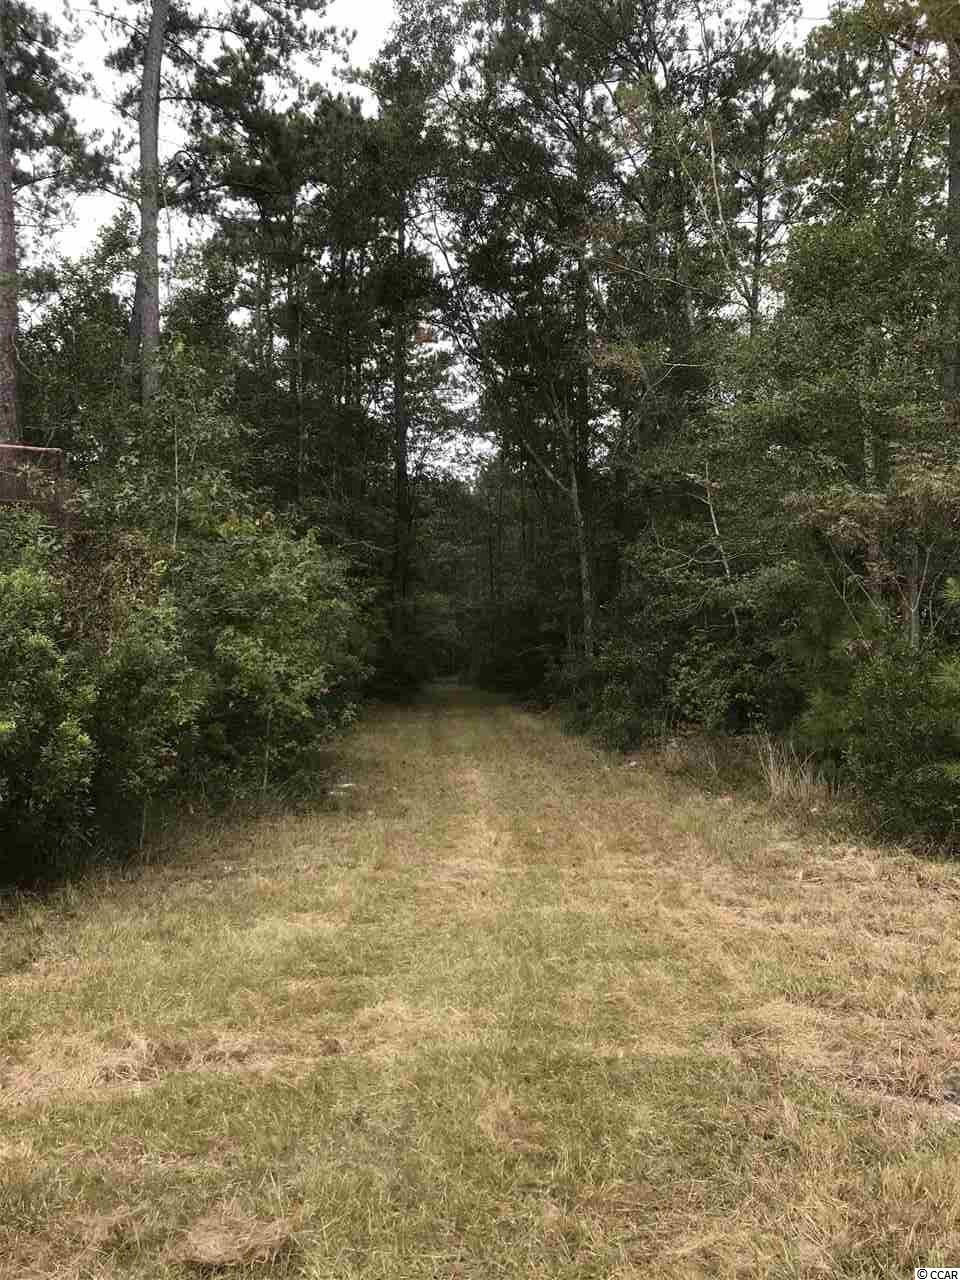 Great timberland and recreational property!  2016 Pine Plantation plus nice block of merchantable pine that is ready to harvest.  Oak-hickory ridge along a beautiful cypress swamp off Santee River provides the ultimate wildlife refuge!  Must See!